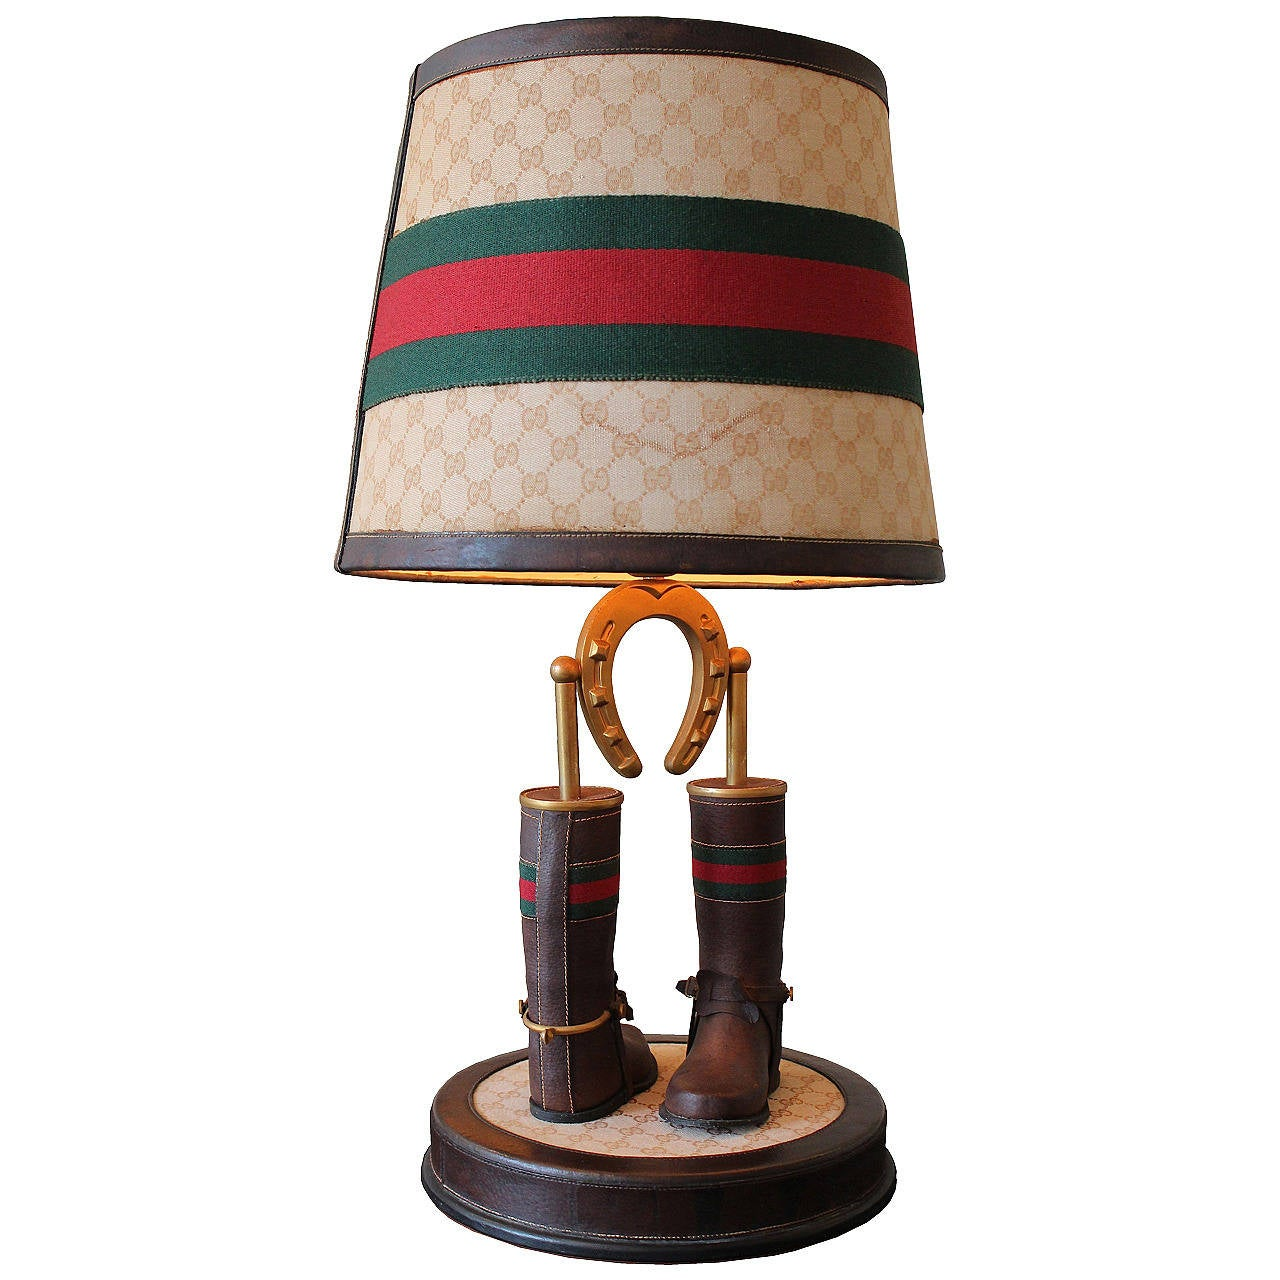 Rare Table Lamp By Gucci At 1stdibs